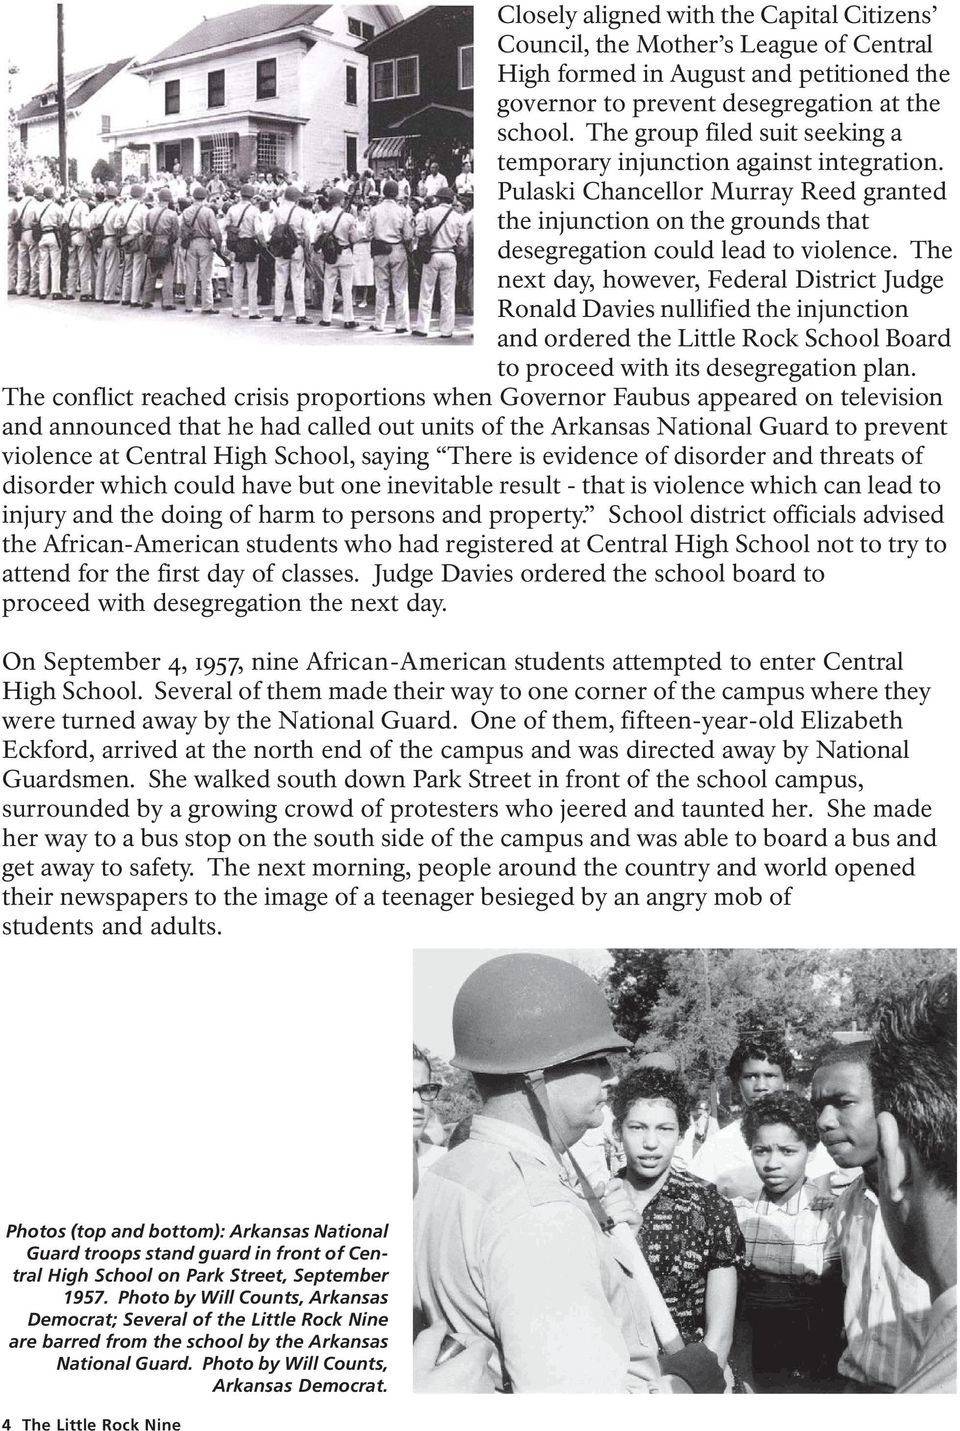 The next day, however, Federal District Judge Ronald Davies nullified the injunction and ordered the Little Rock School Board to proceed with its desegregation plan.